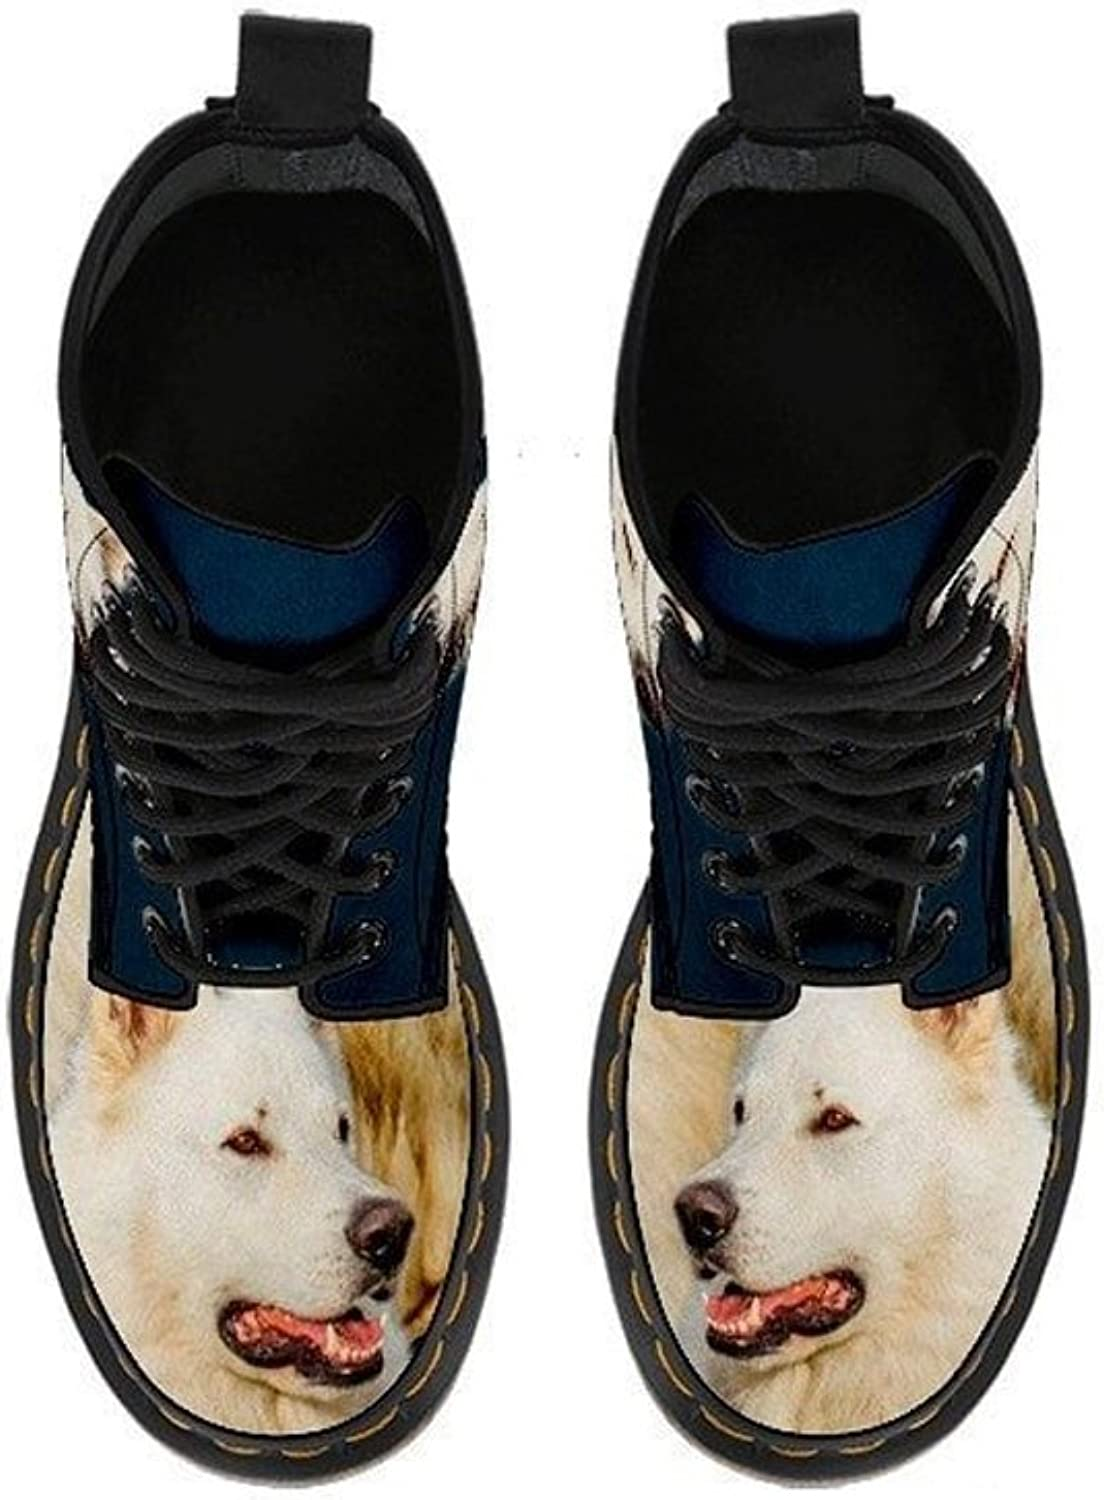 Cute White Shepherd Full Suede Double Side Print Boots for Men